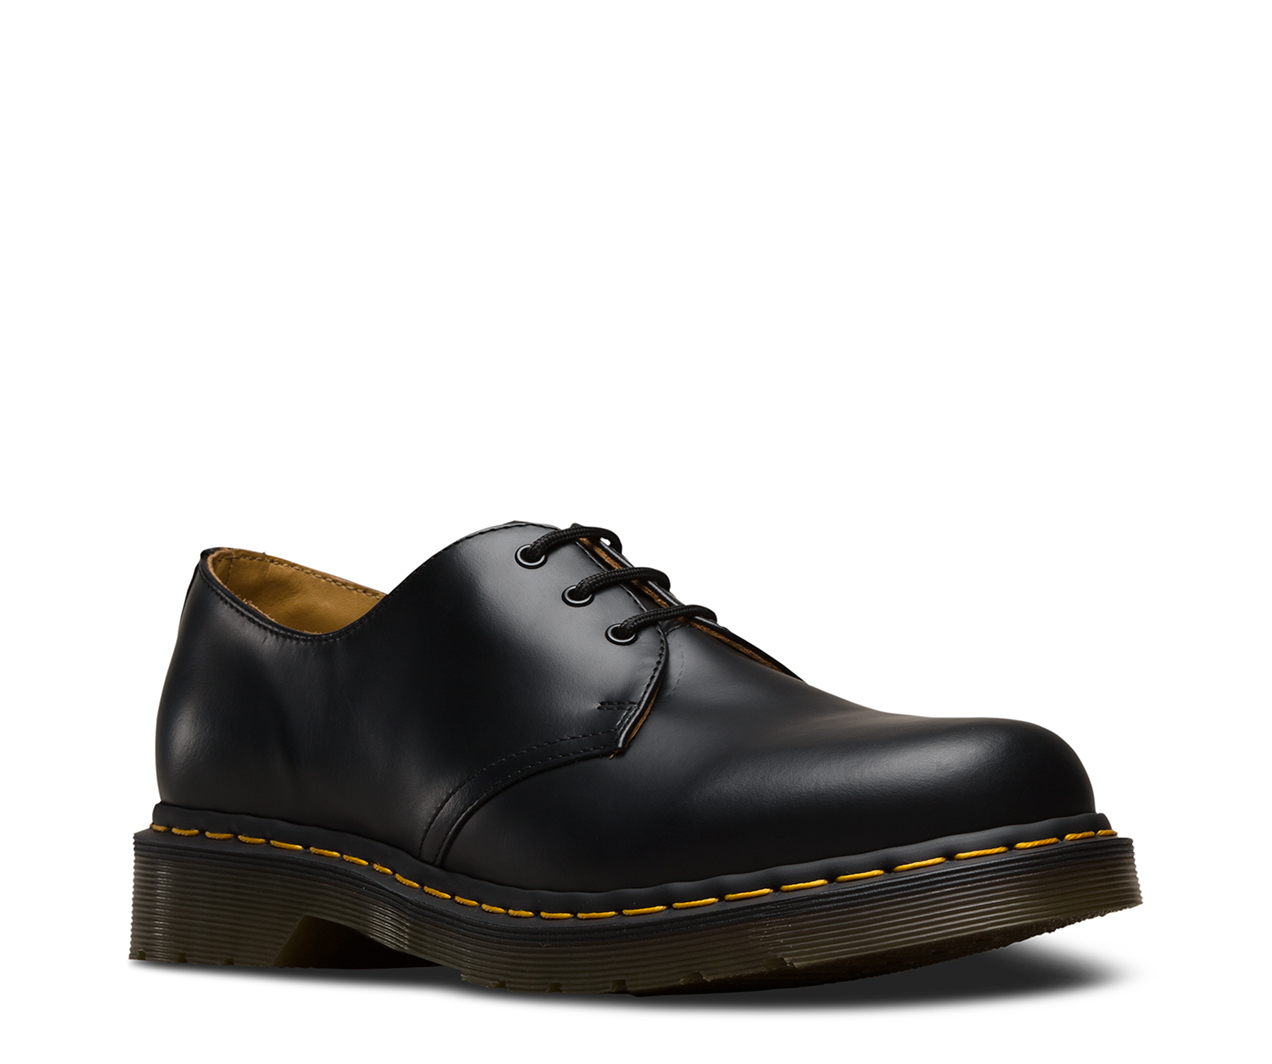 1461 smooth 1461 3 eye shoes official dr martens store. Black Bedroom Furniture Sets. Home Design Ideas